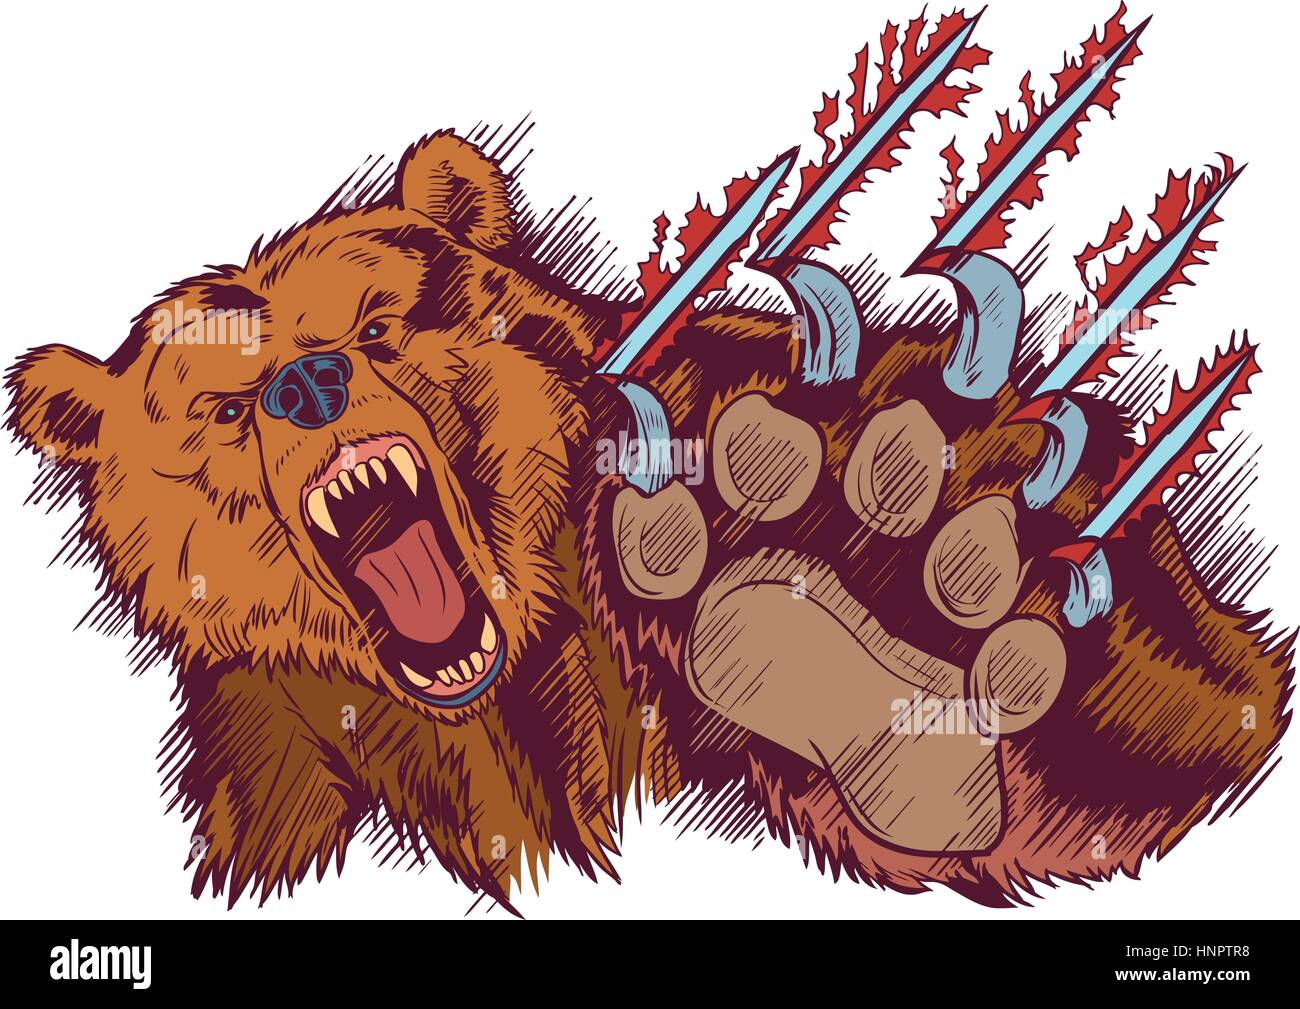 Vector Cartoon clip art illustration of a brown bear mascot slashing or clawing at the foreground. - Stock Vector